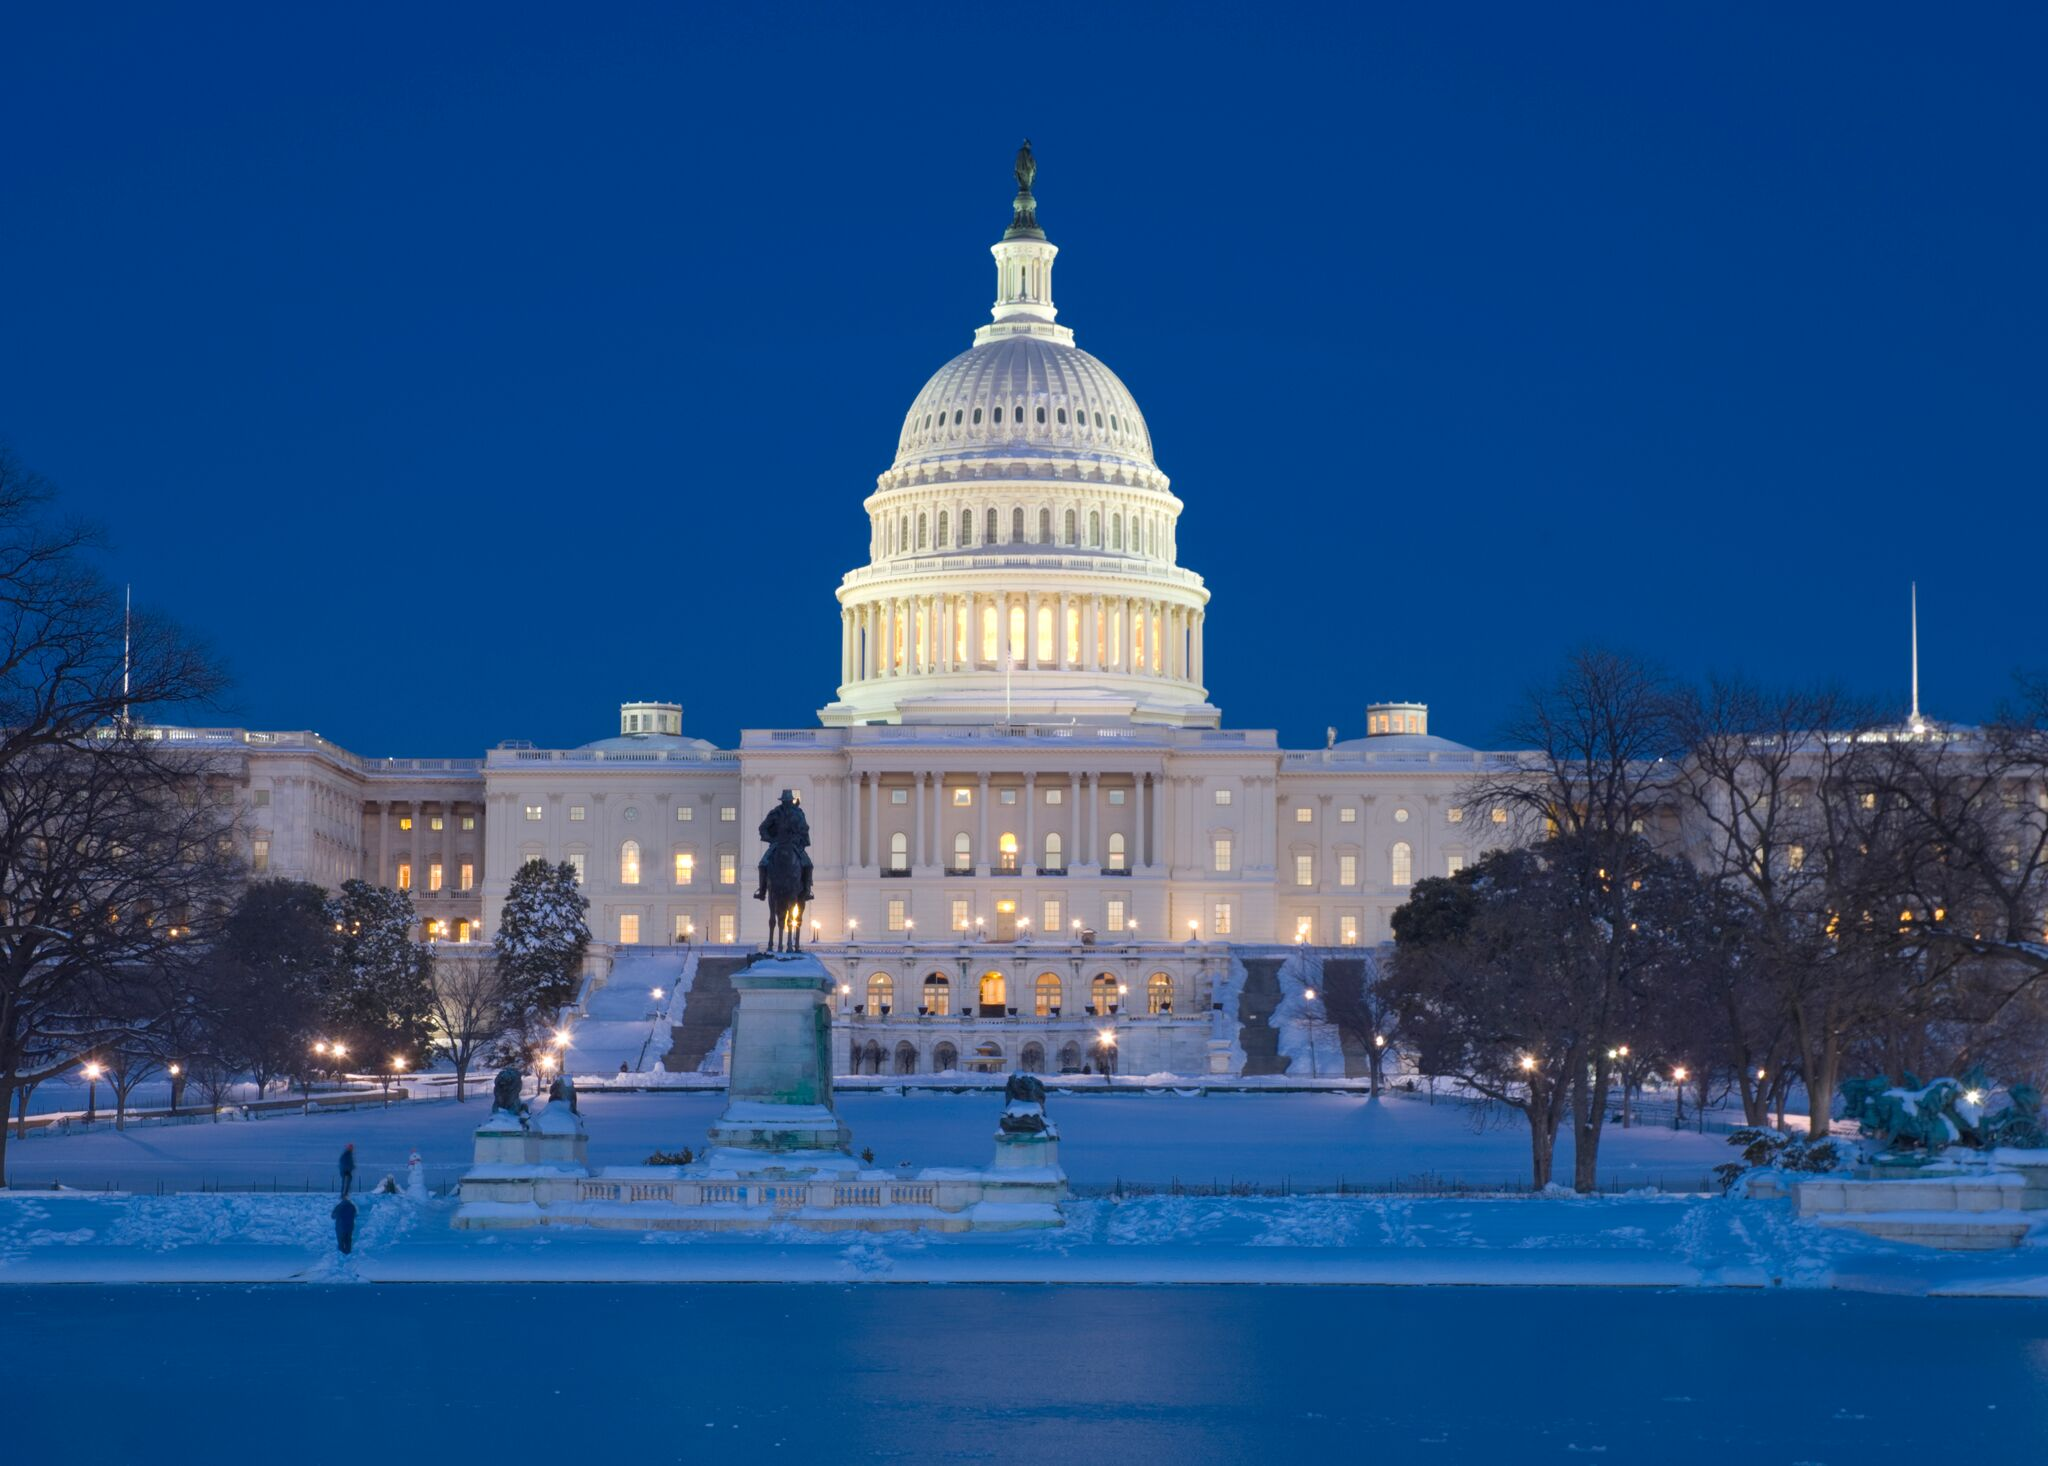 capitol-building-and-surrounding-grounds-135960916_3923x2809_preview